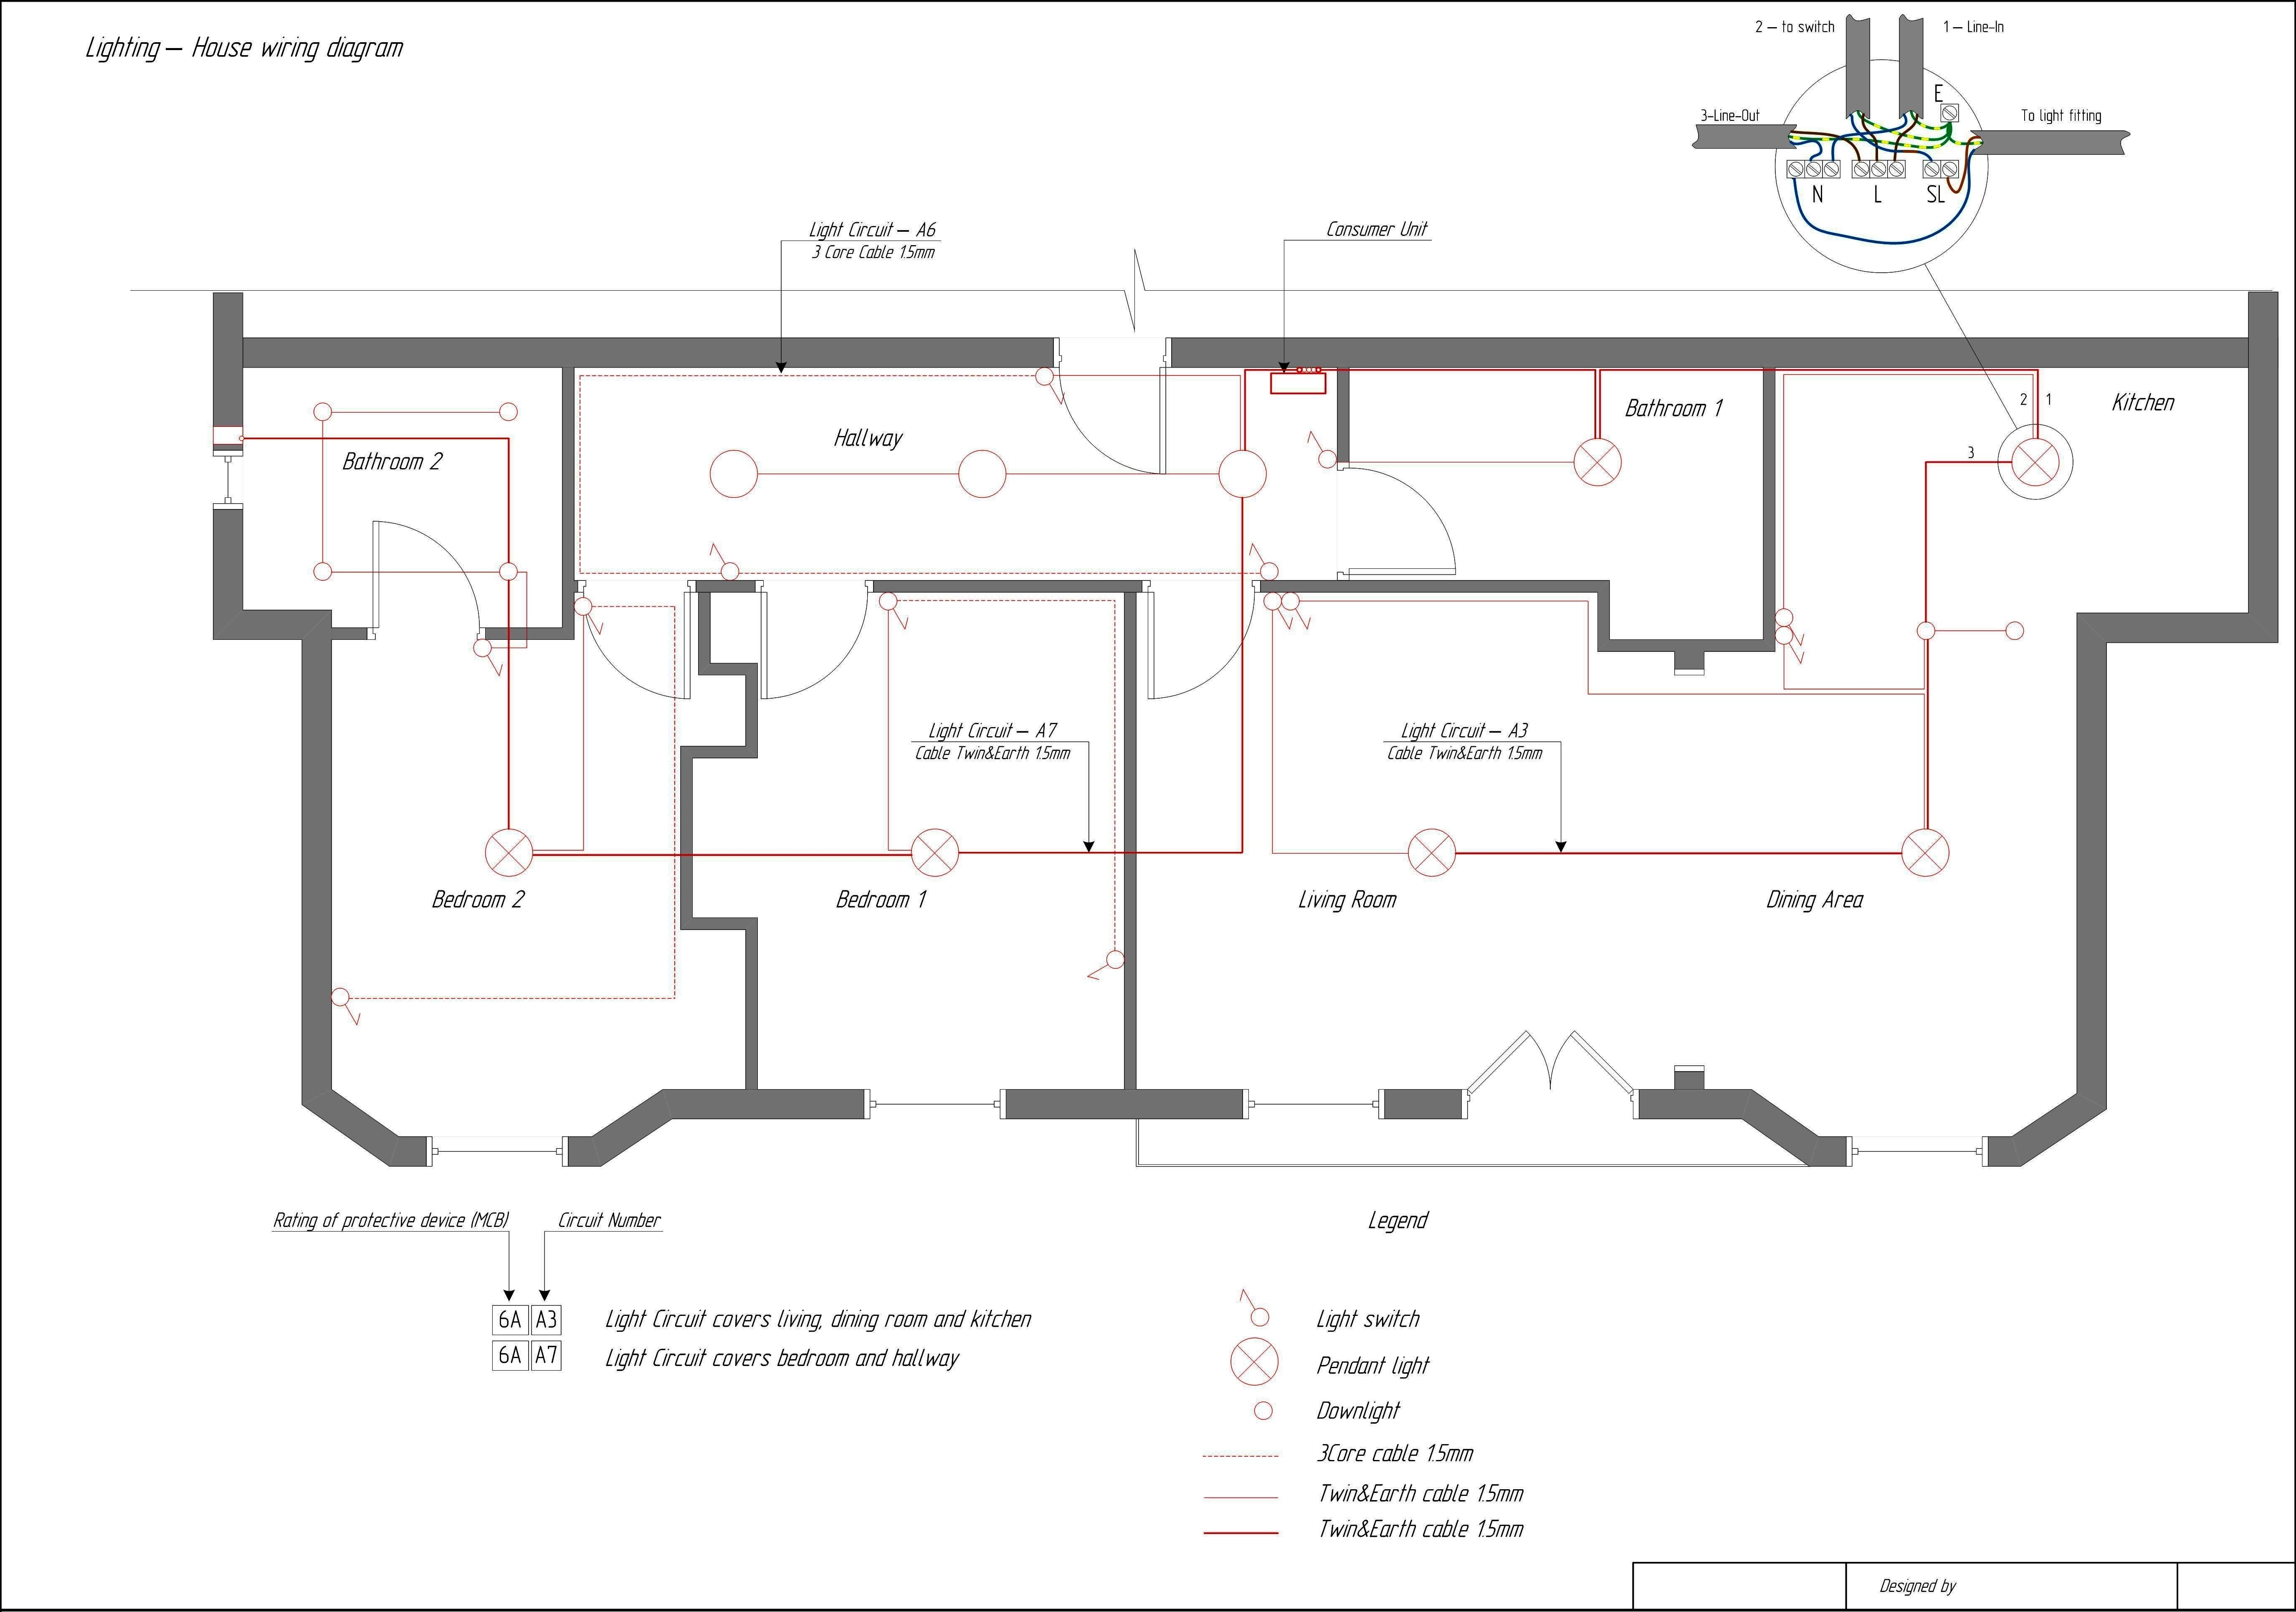 Electrical Wiring Diagrams New House Wiring Diagram House Wiring Diagrams Database